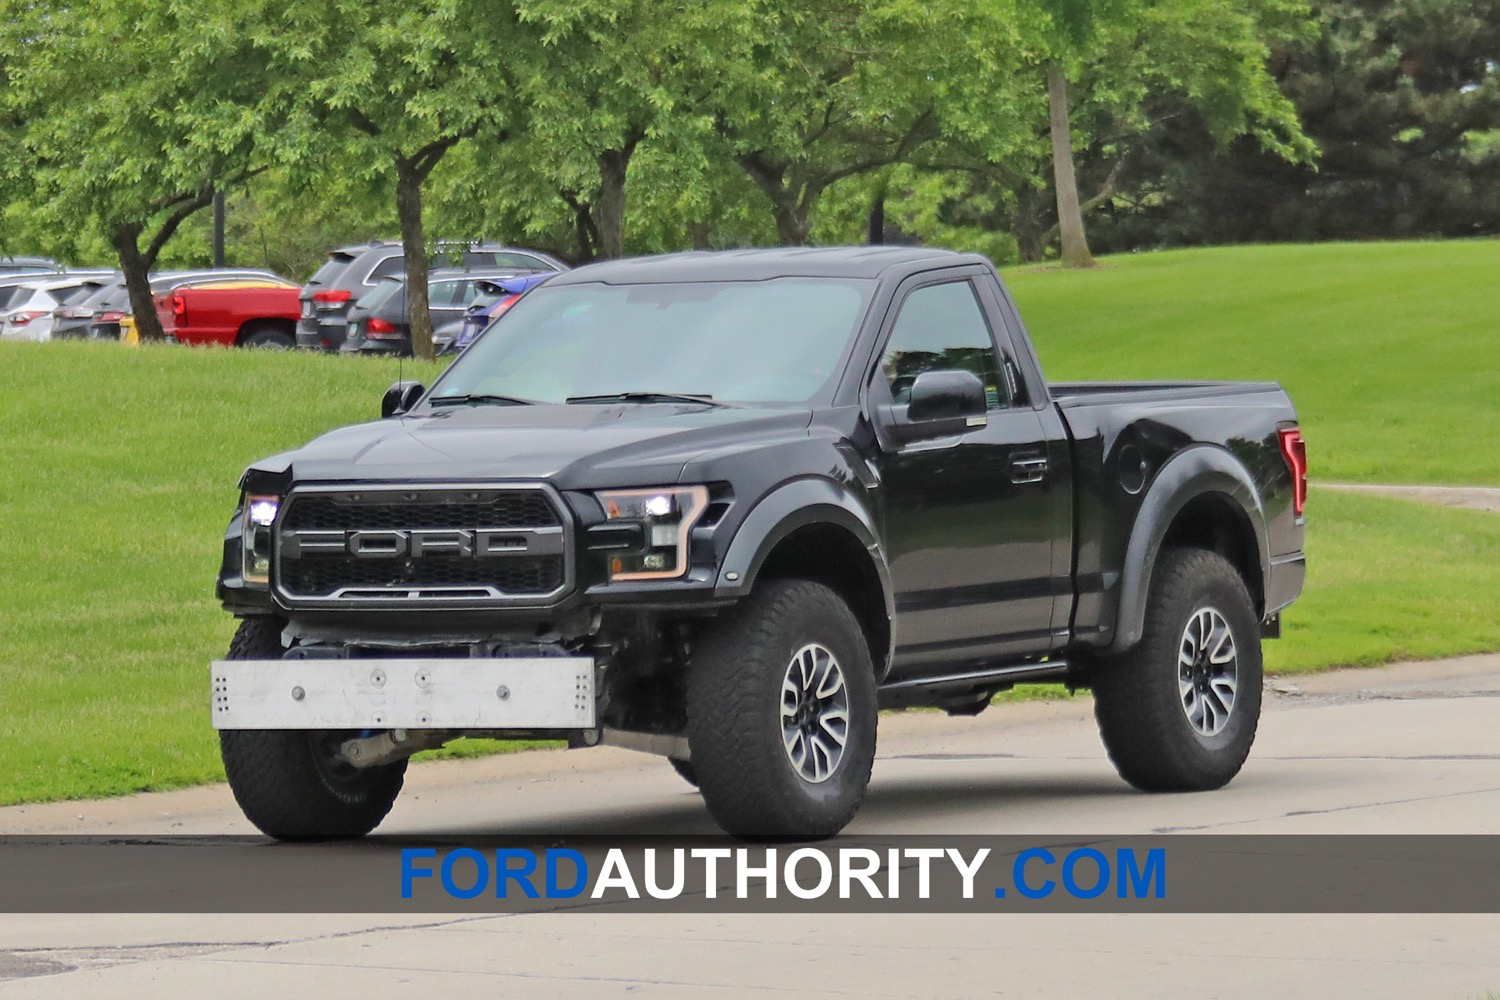 2021 Ford Bronco Raptor Rumors Fly